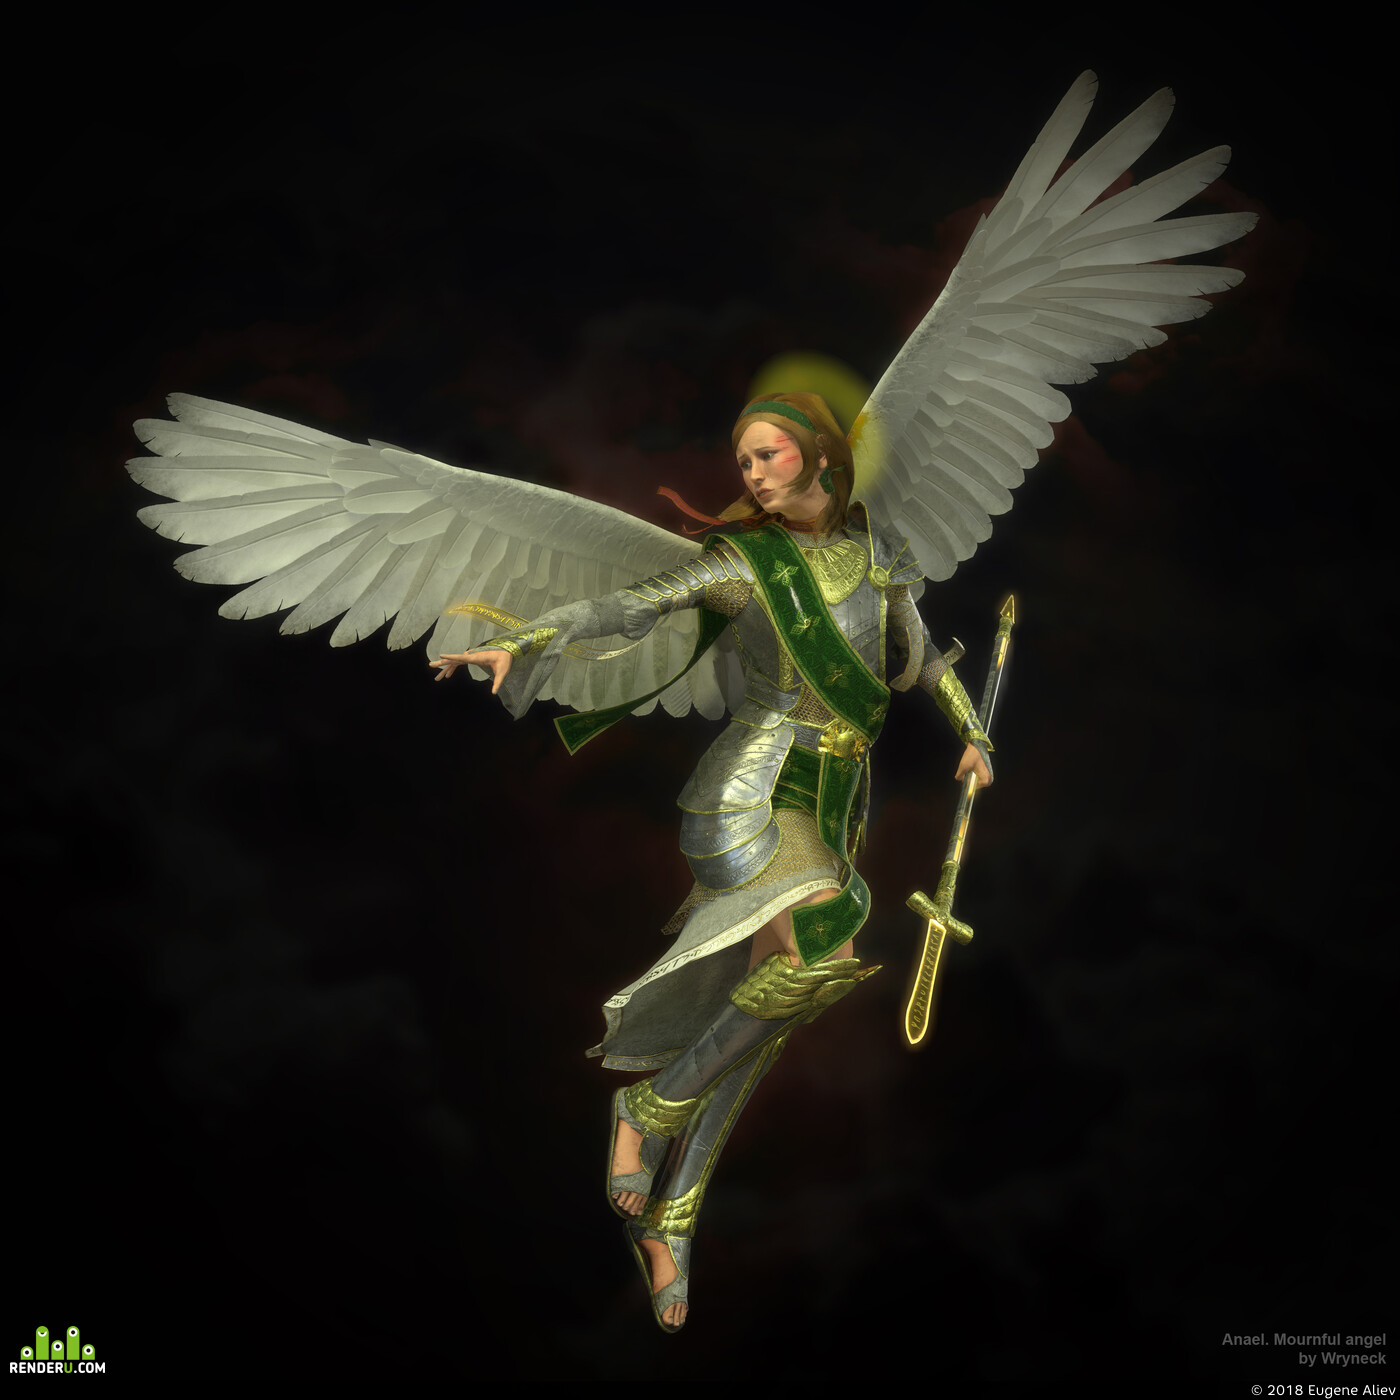 Character, game art, low-poly, angel